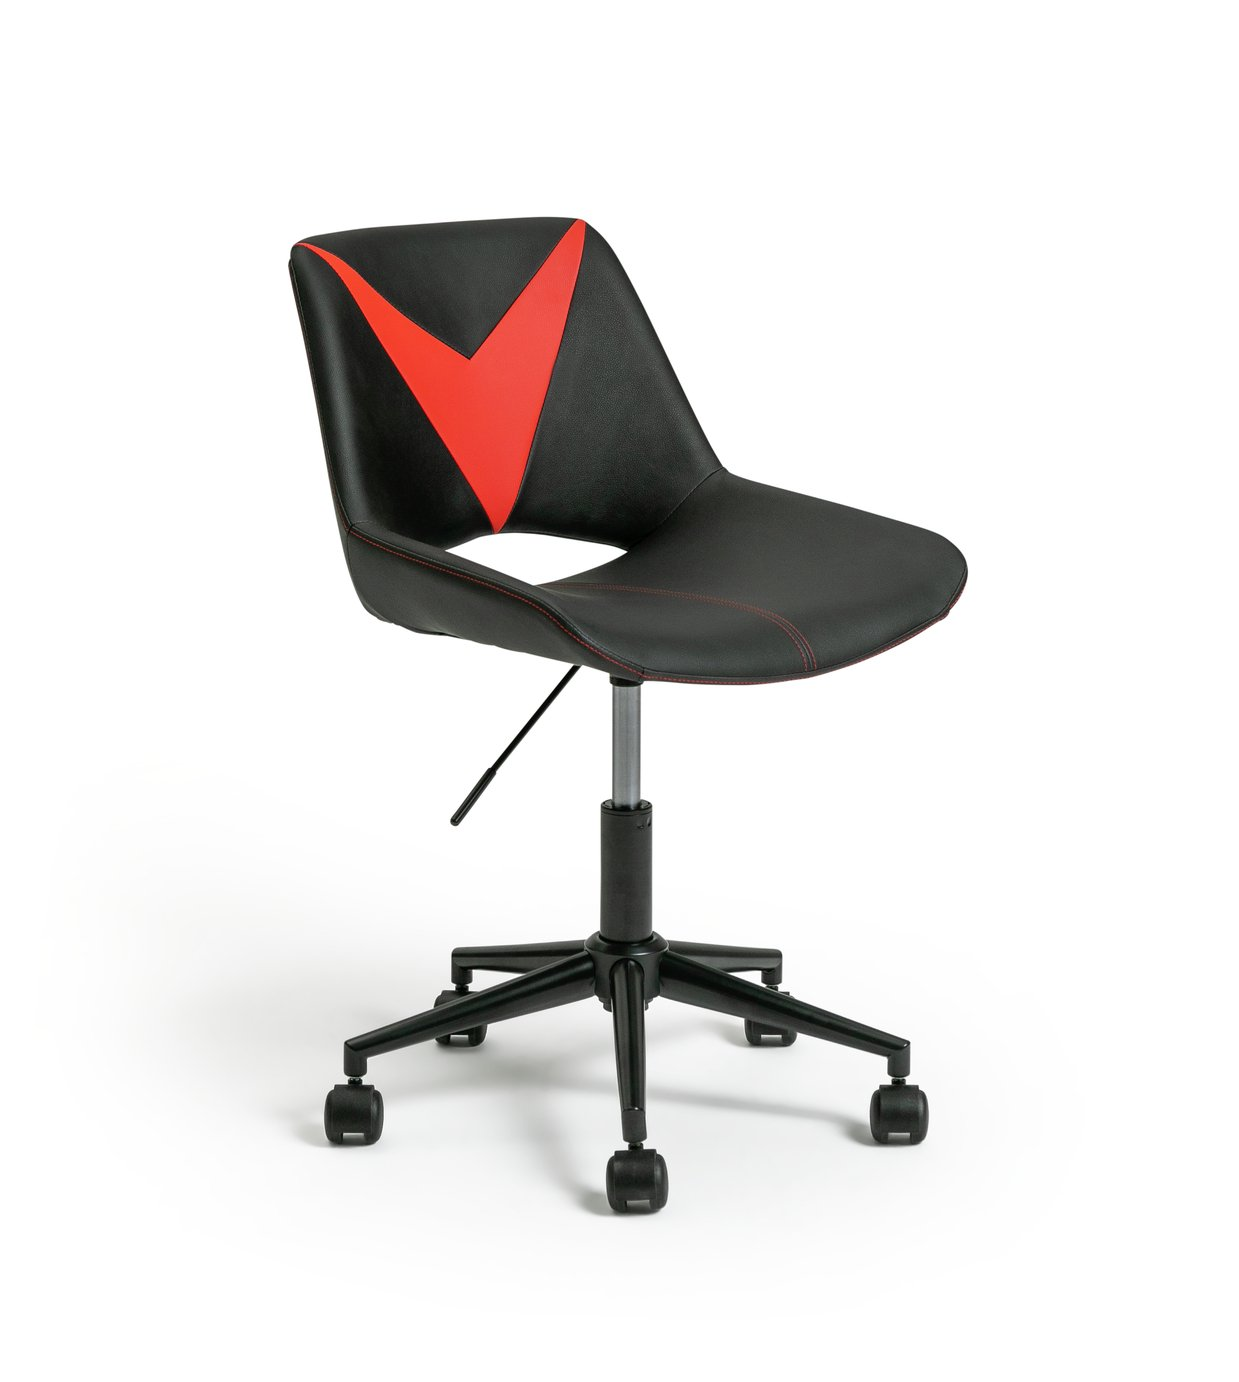 Habitat Saber Faux Leather Gaming Chair - Red and Black